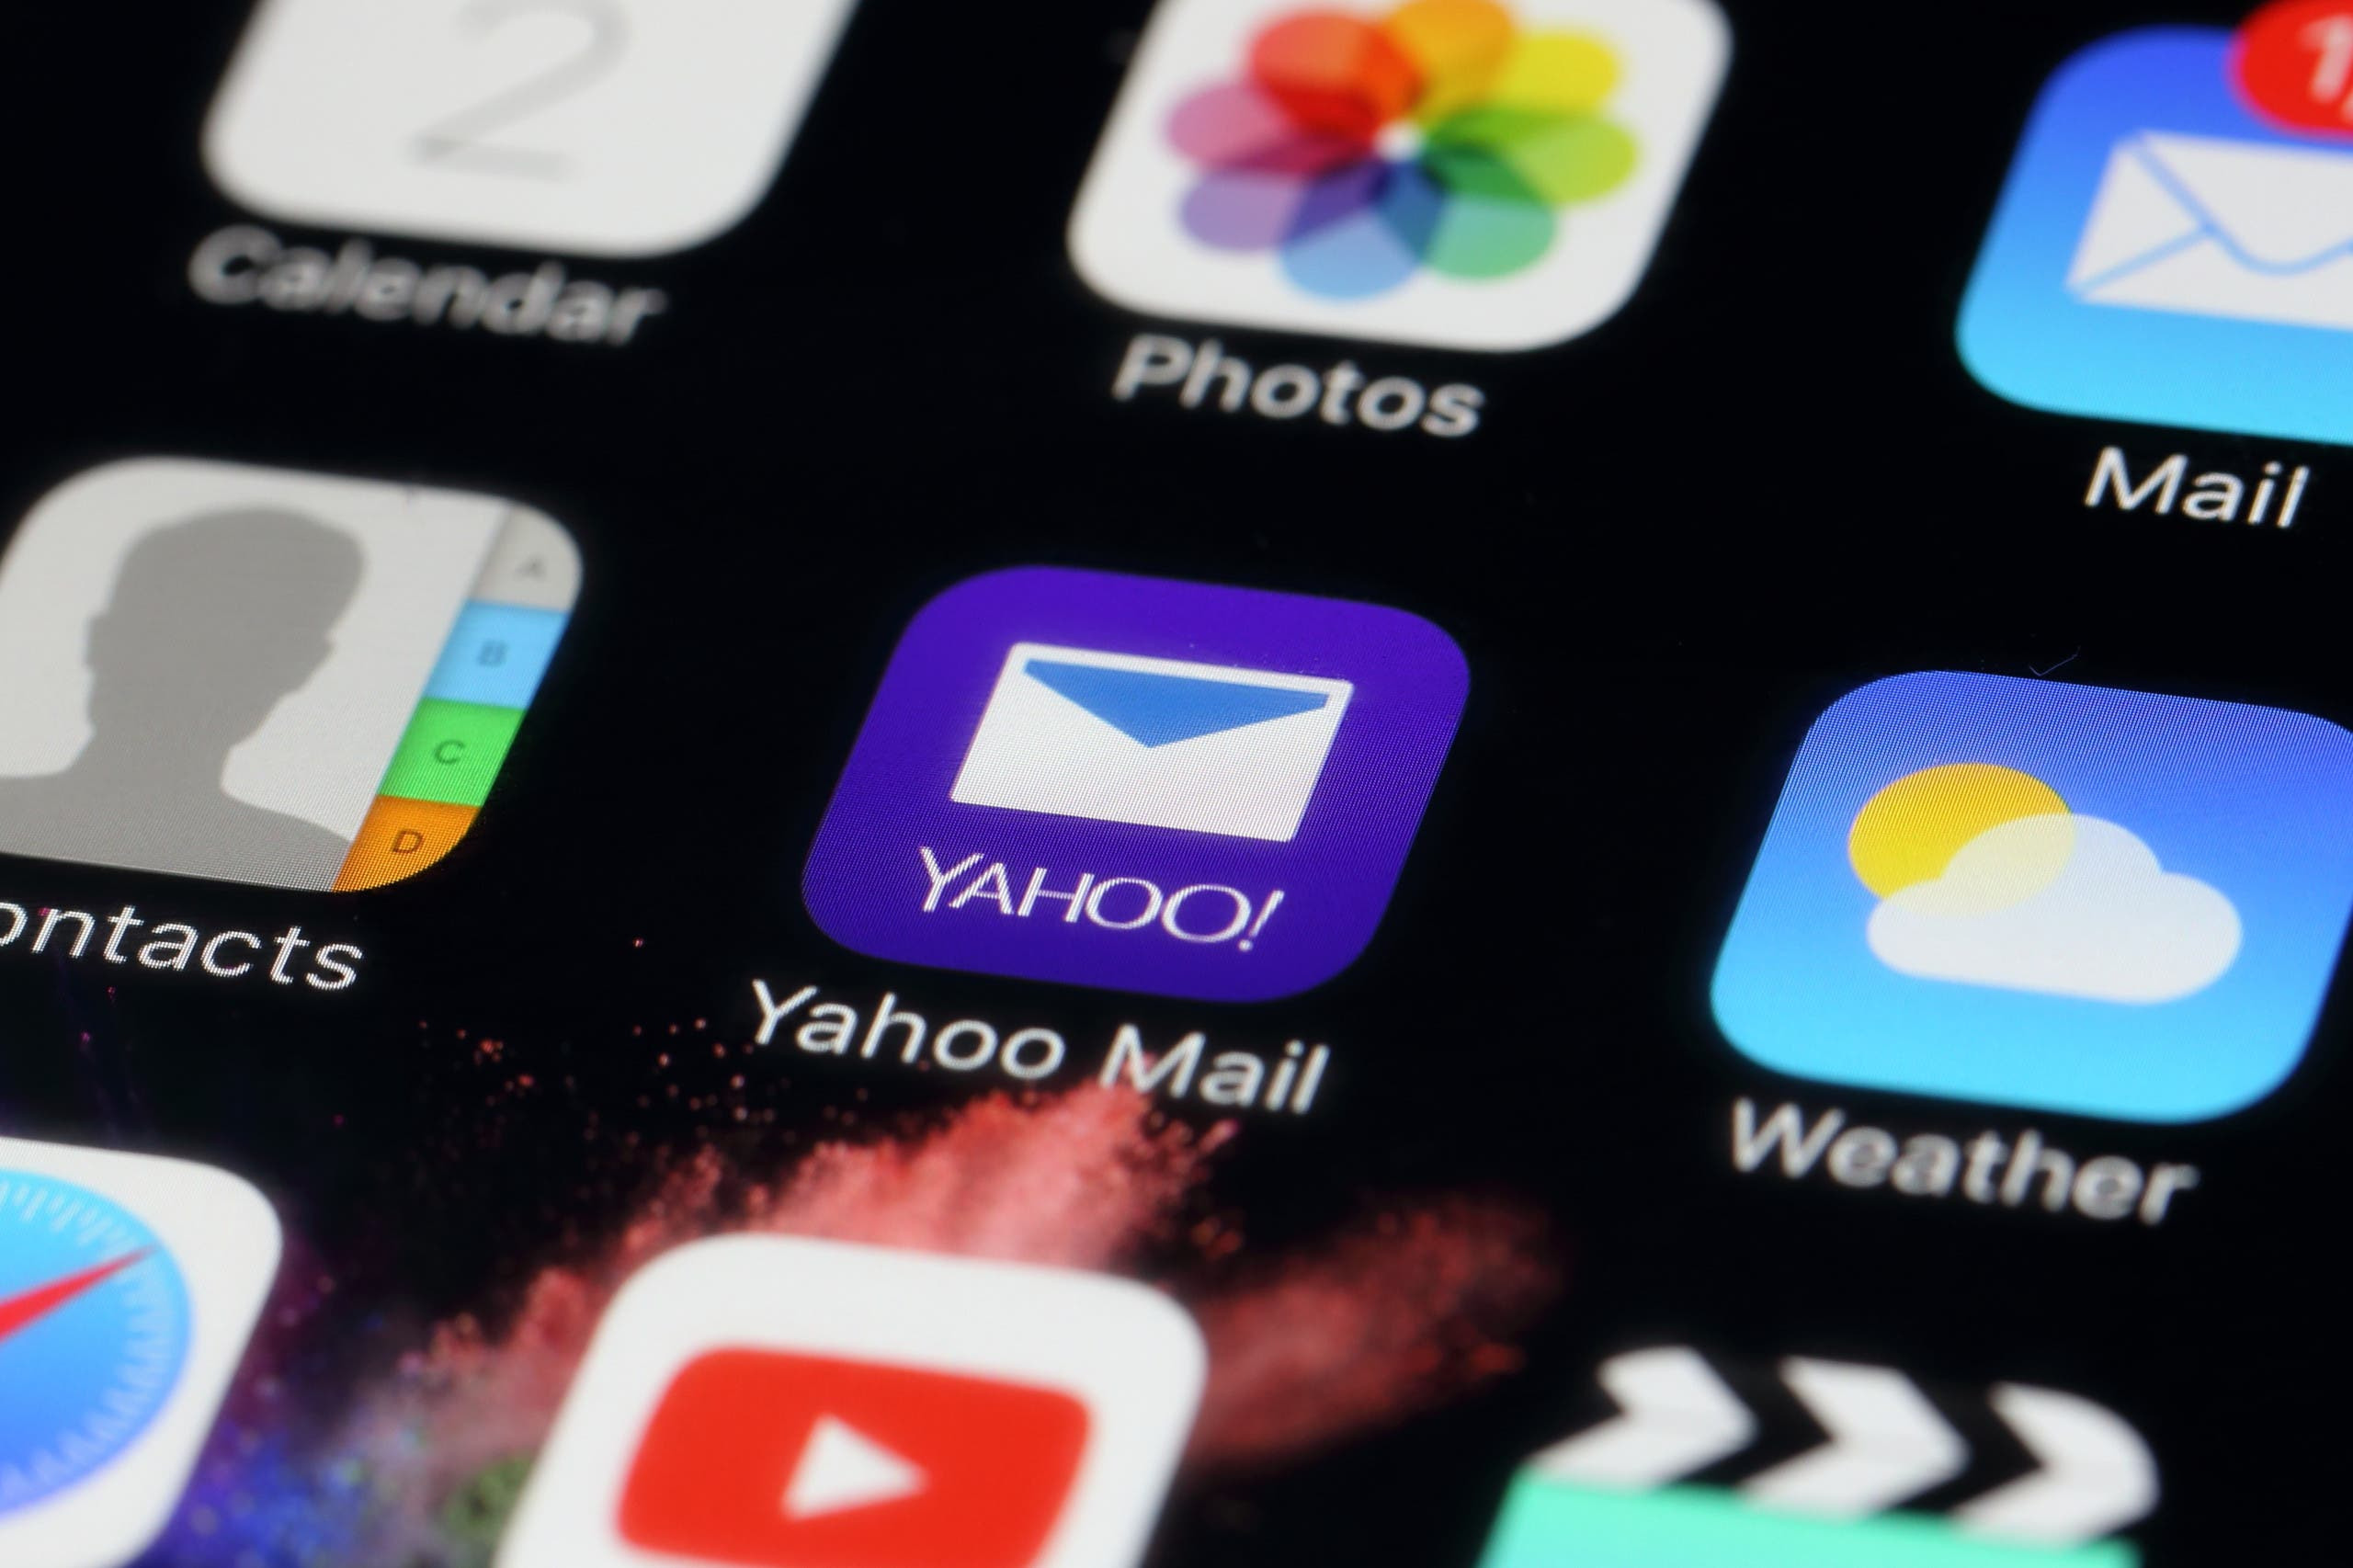 An application of Yahoo Mail. (Shutterstock)